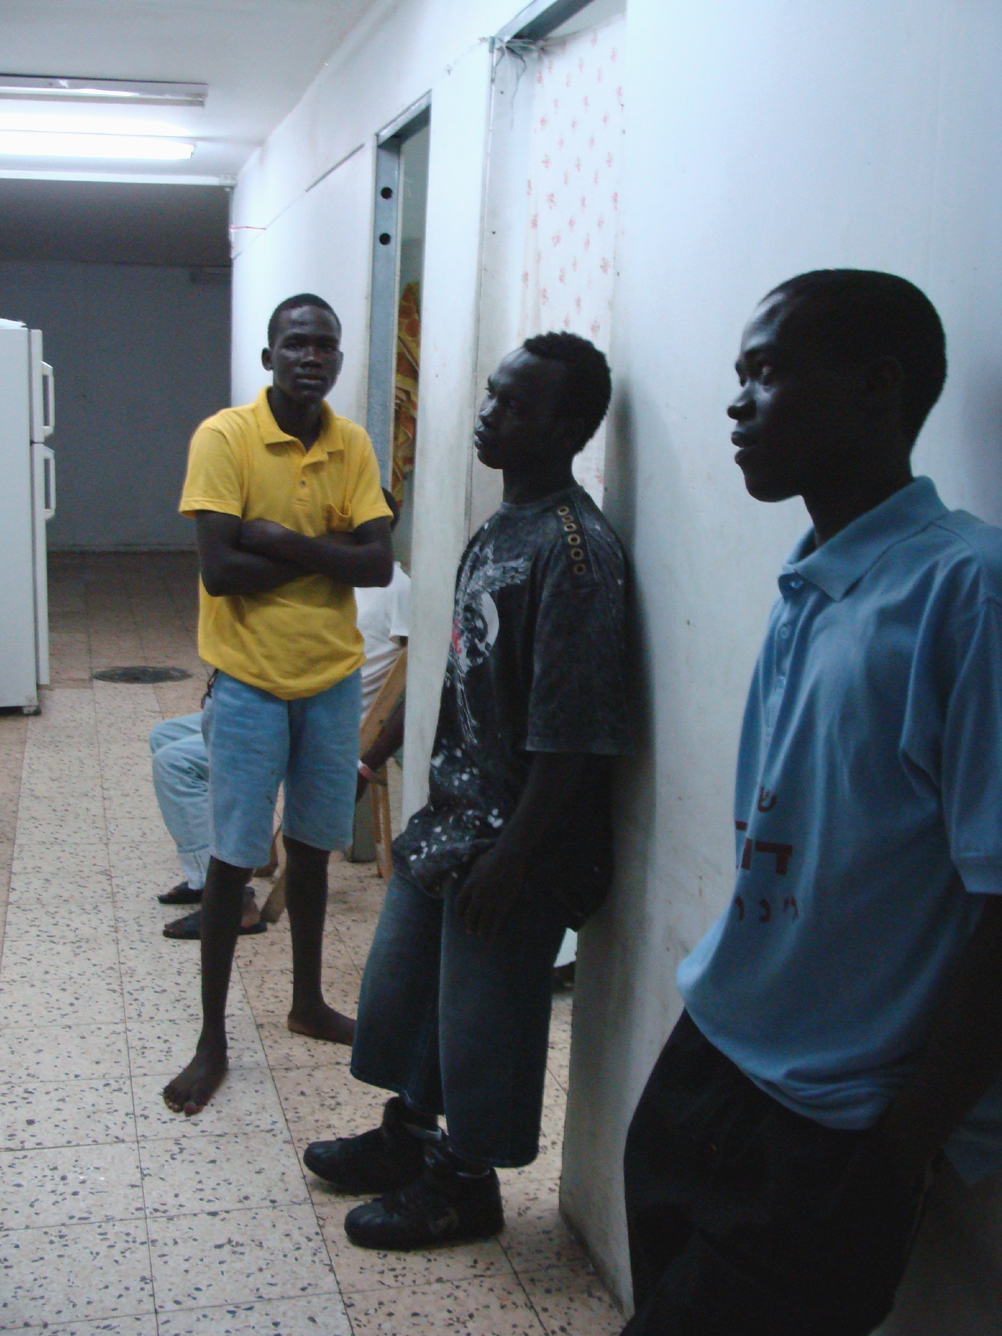 Unaccompanied minors from South Sudan at a refugee shelter in Tel Aviv